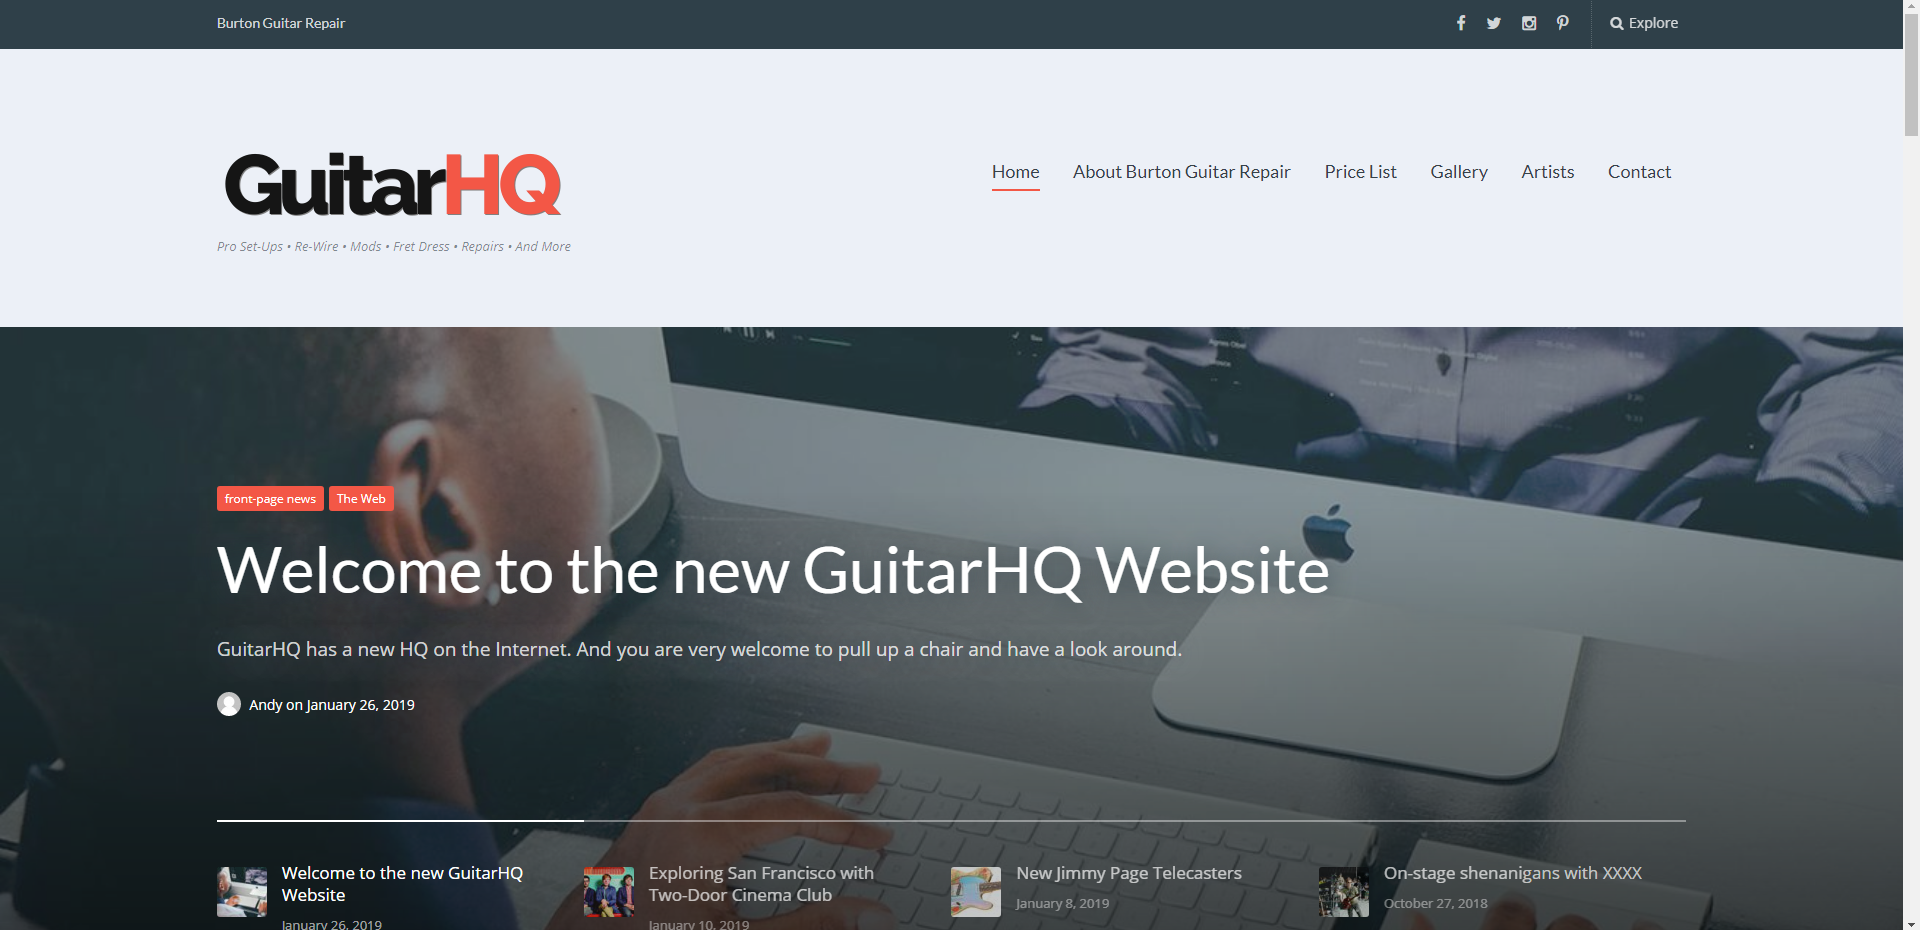 GuitarHQ: AFTER